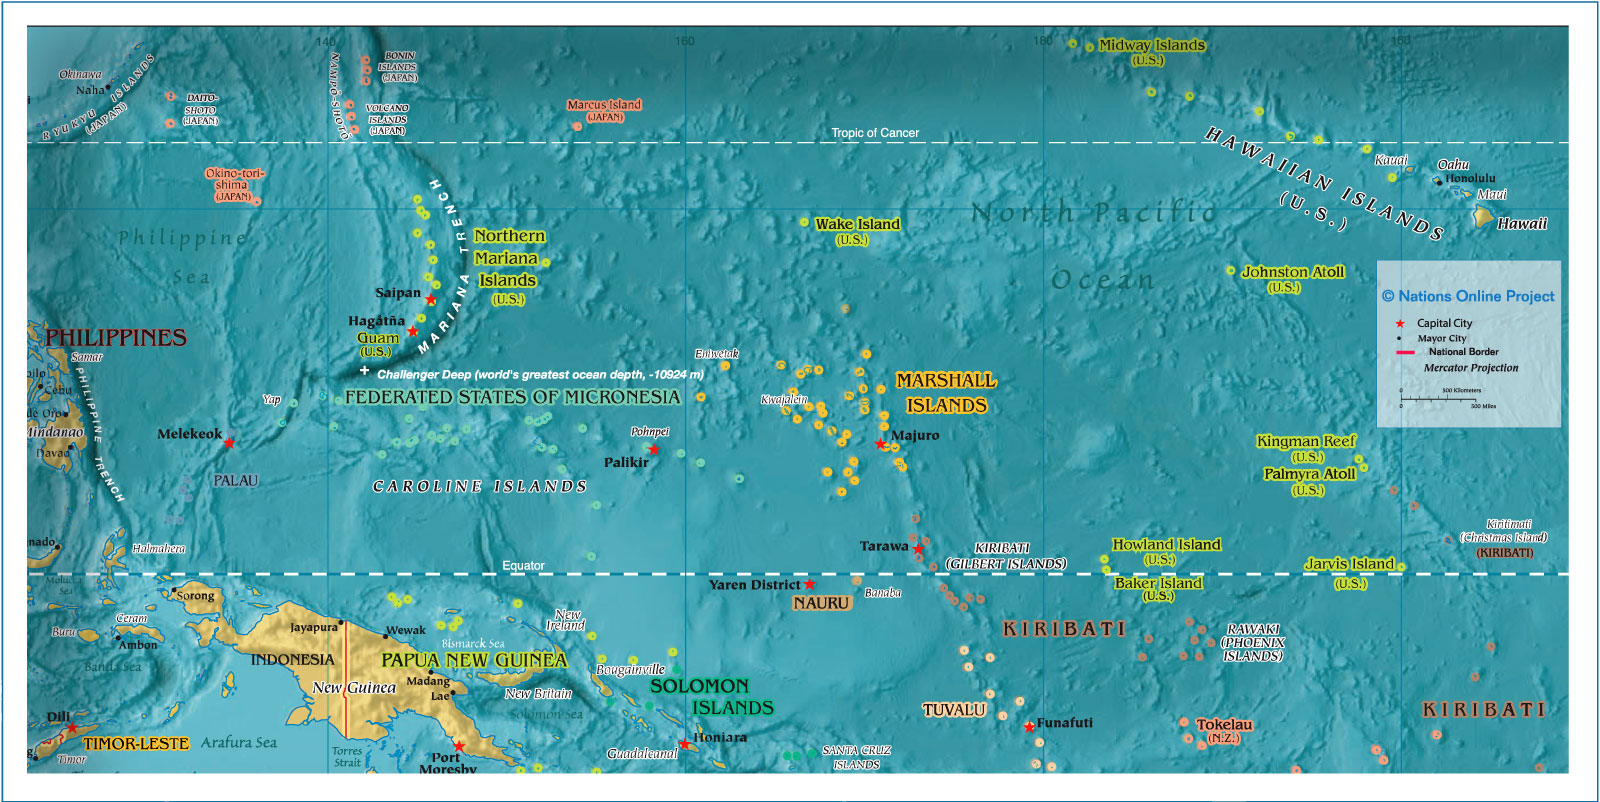 Reference Map of Micronesia